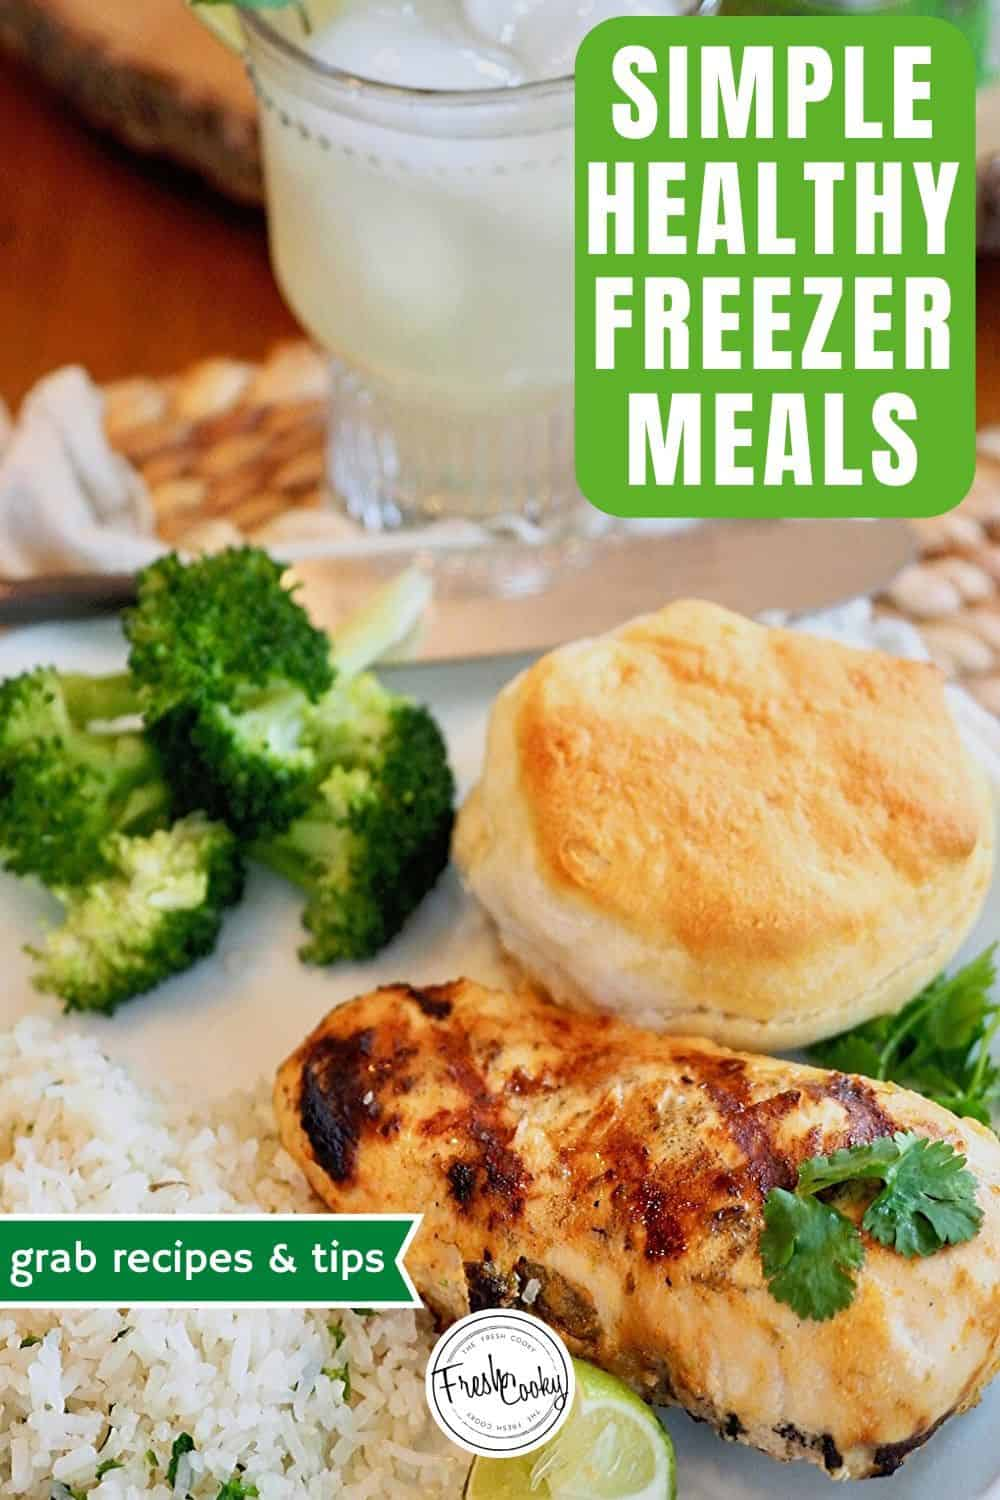 Delicious HEALTHY and EASY FREEZER MEALS! Prep 10 meals in less than a couple hours. Great for busy weeknights, when you don't want to worry about dinner. Recipes #thefreshcooky | #freezermeals #healthy #easy #whole30 #pantrystaples via @thefreshcooky